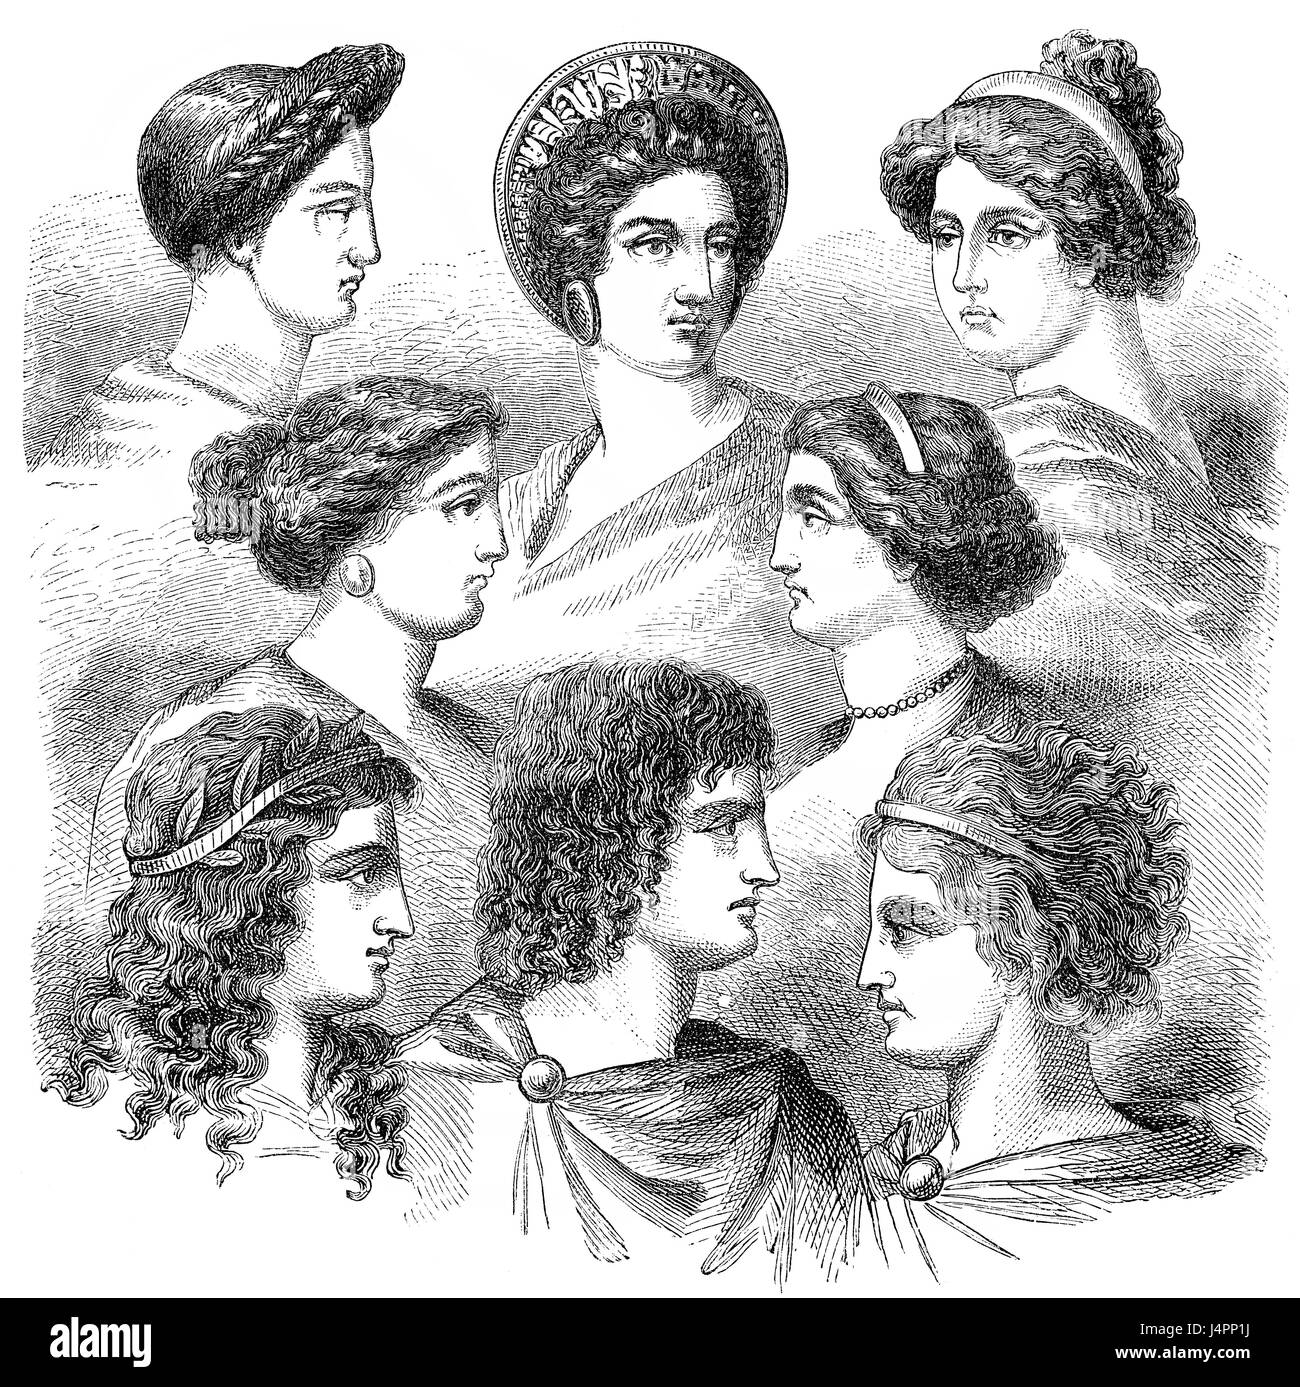 Traditional hairstyles in ancient Greece Stock Photo  140641806 - Alamy aefde666423